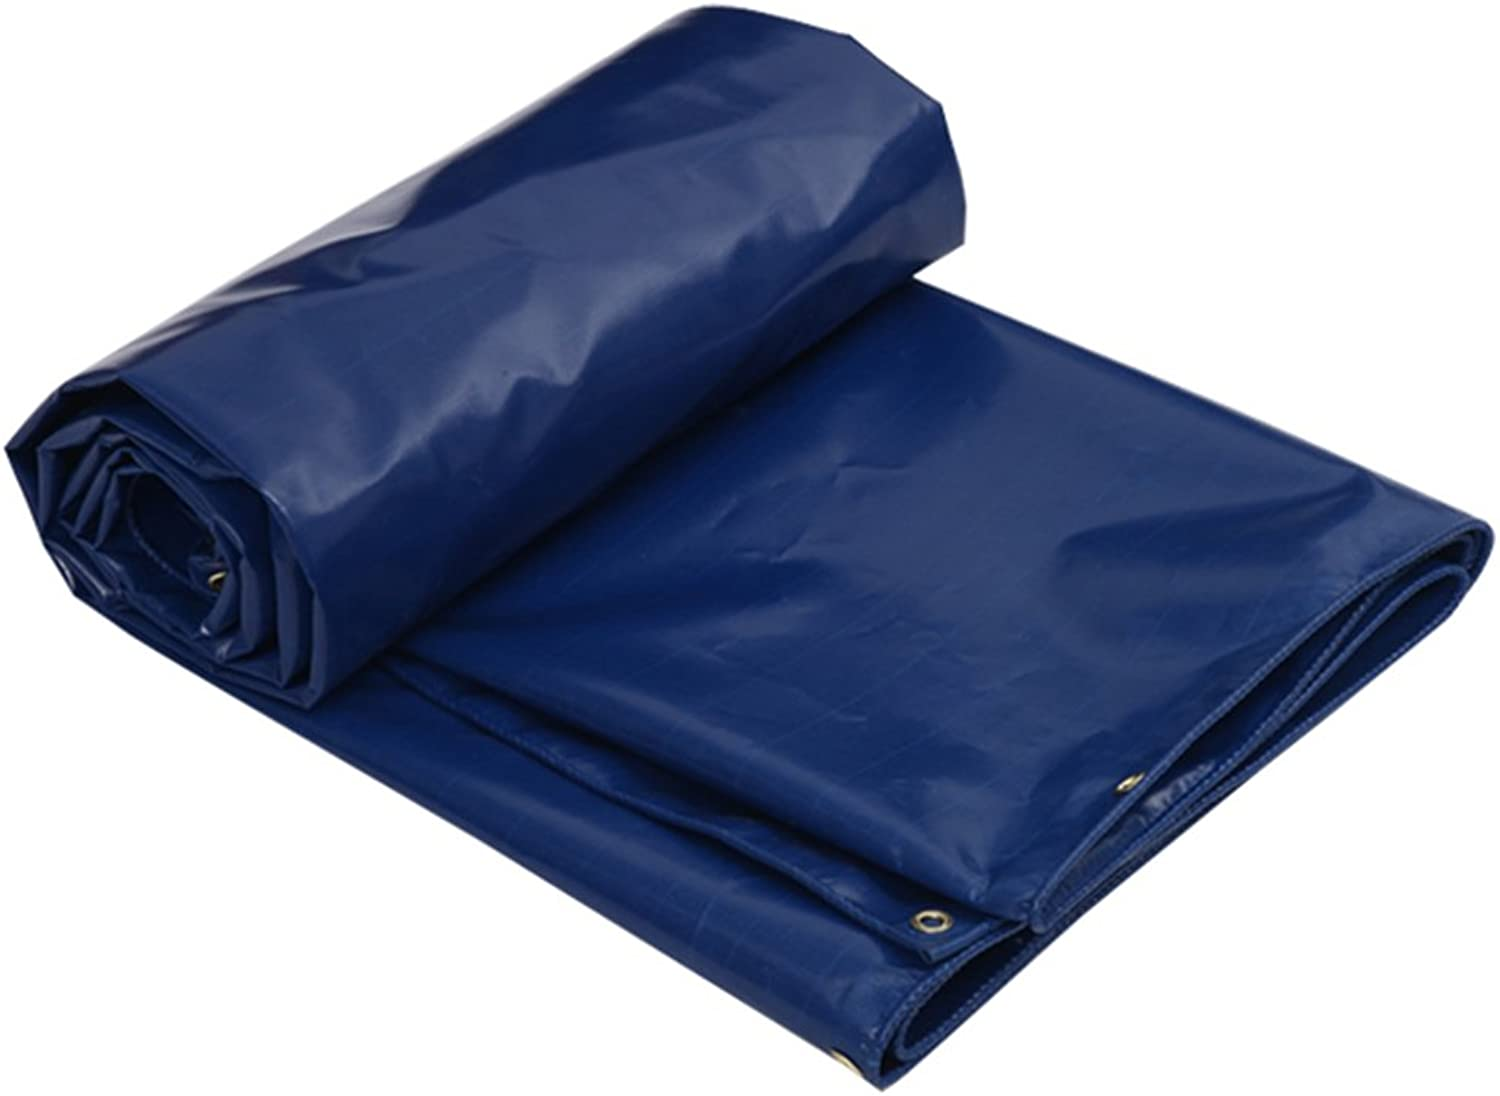 CHAOXIANG Tarpaulin Tent Foldable Thicken DoubleSided Waterproof Sun Predection ColdResistant WearResistant AntiCorrosion DustProof PVC blueee, 500g m2, 8 Sizes (color   blueee, Size   3x3m)